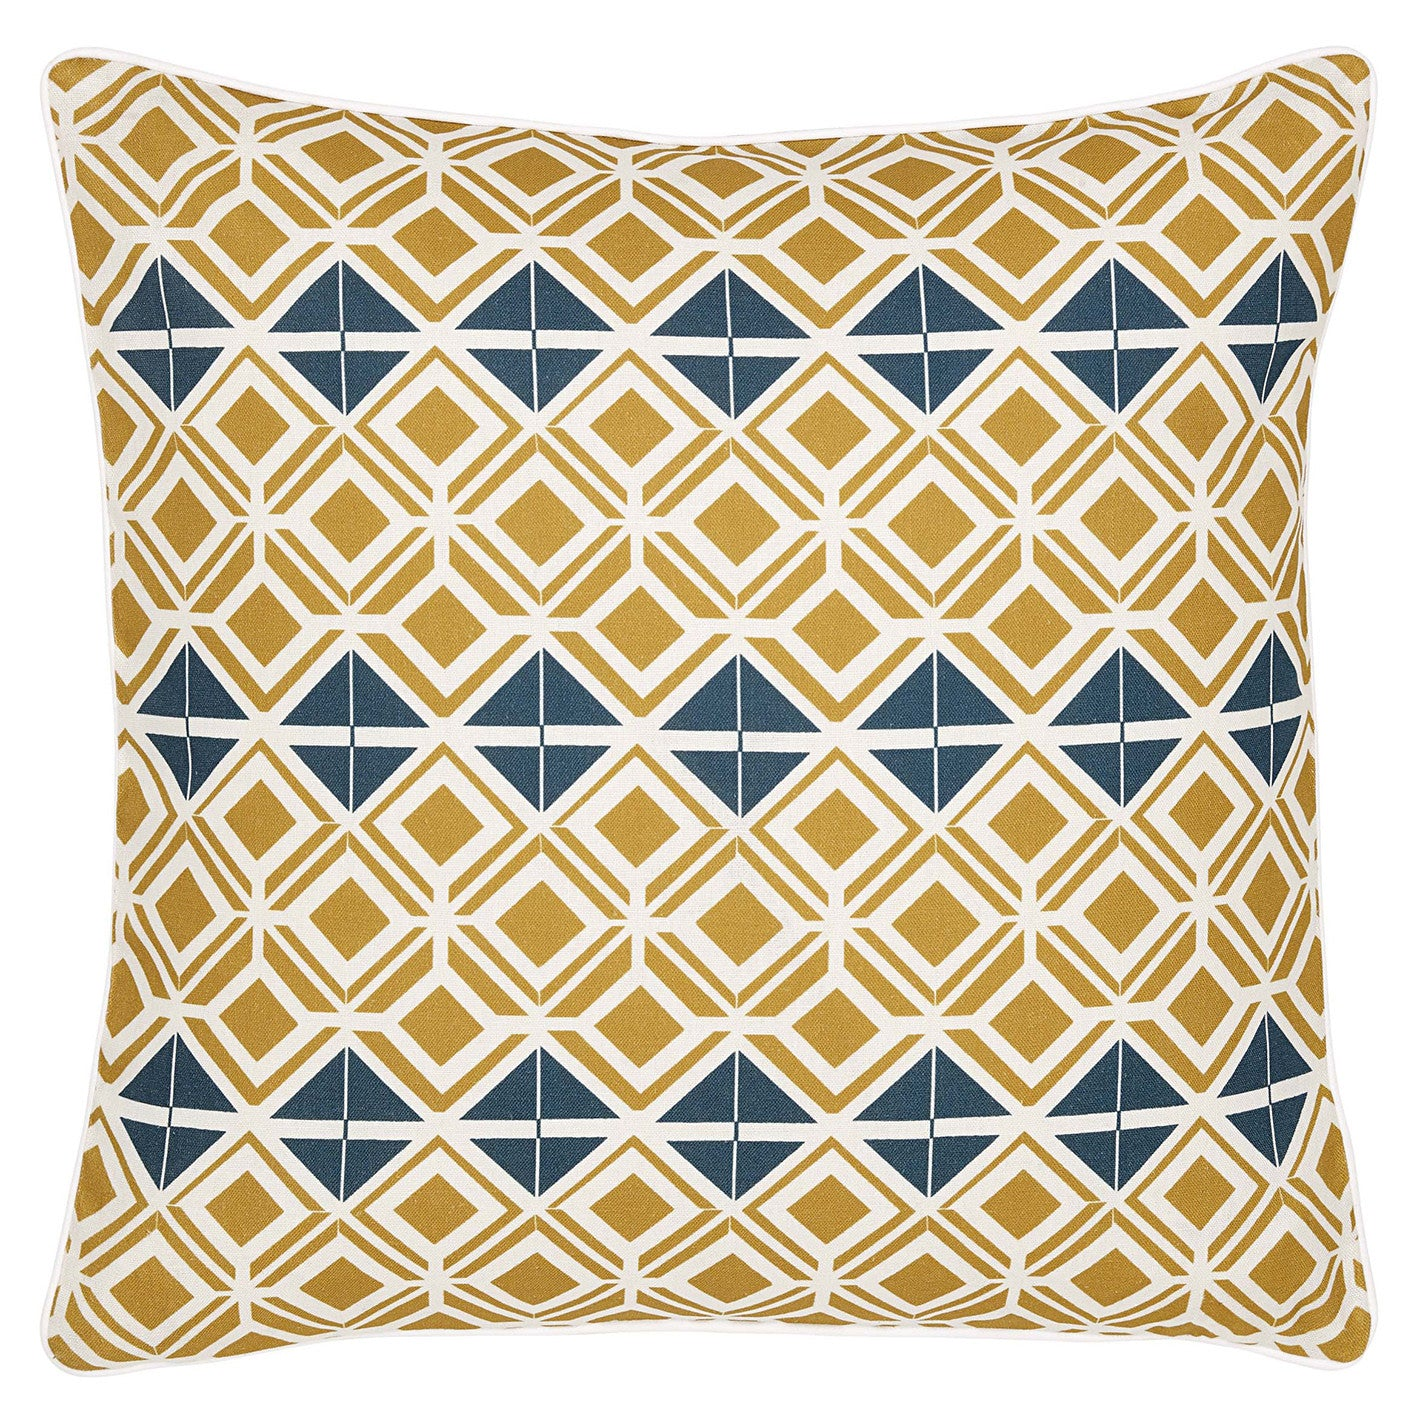 Glasswork Geometric Linen Decorative Throw Pillow in Gold and Dark Petrol Blue ships from Canada including the USA